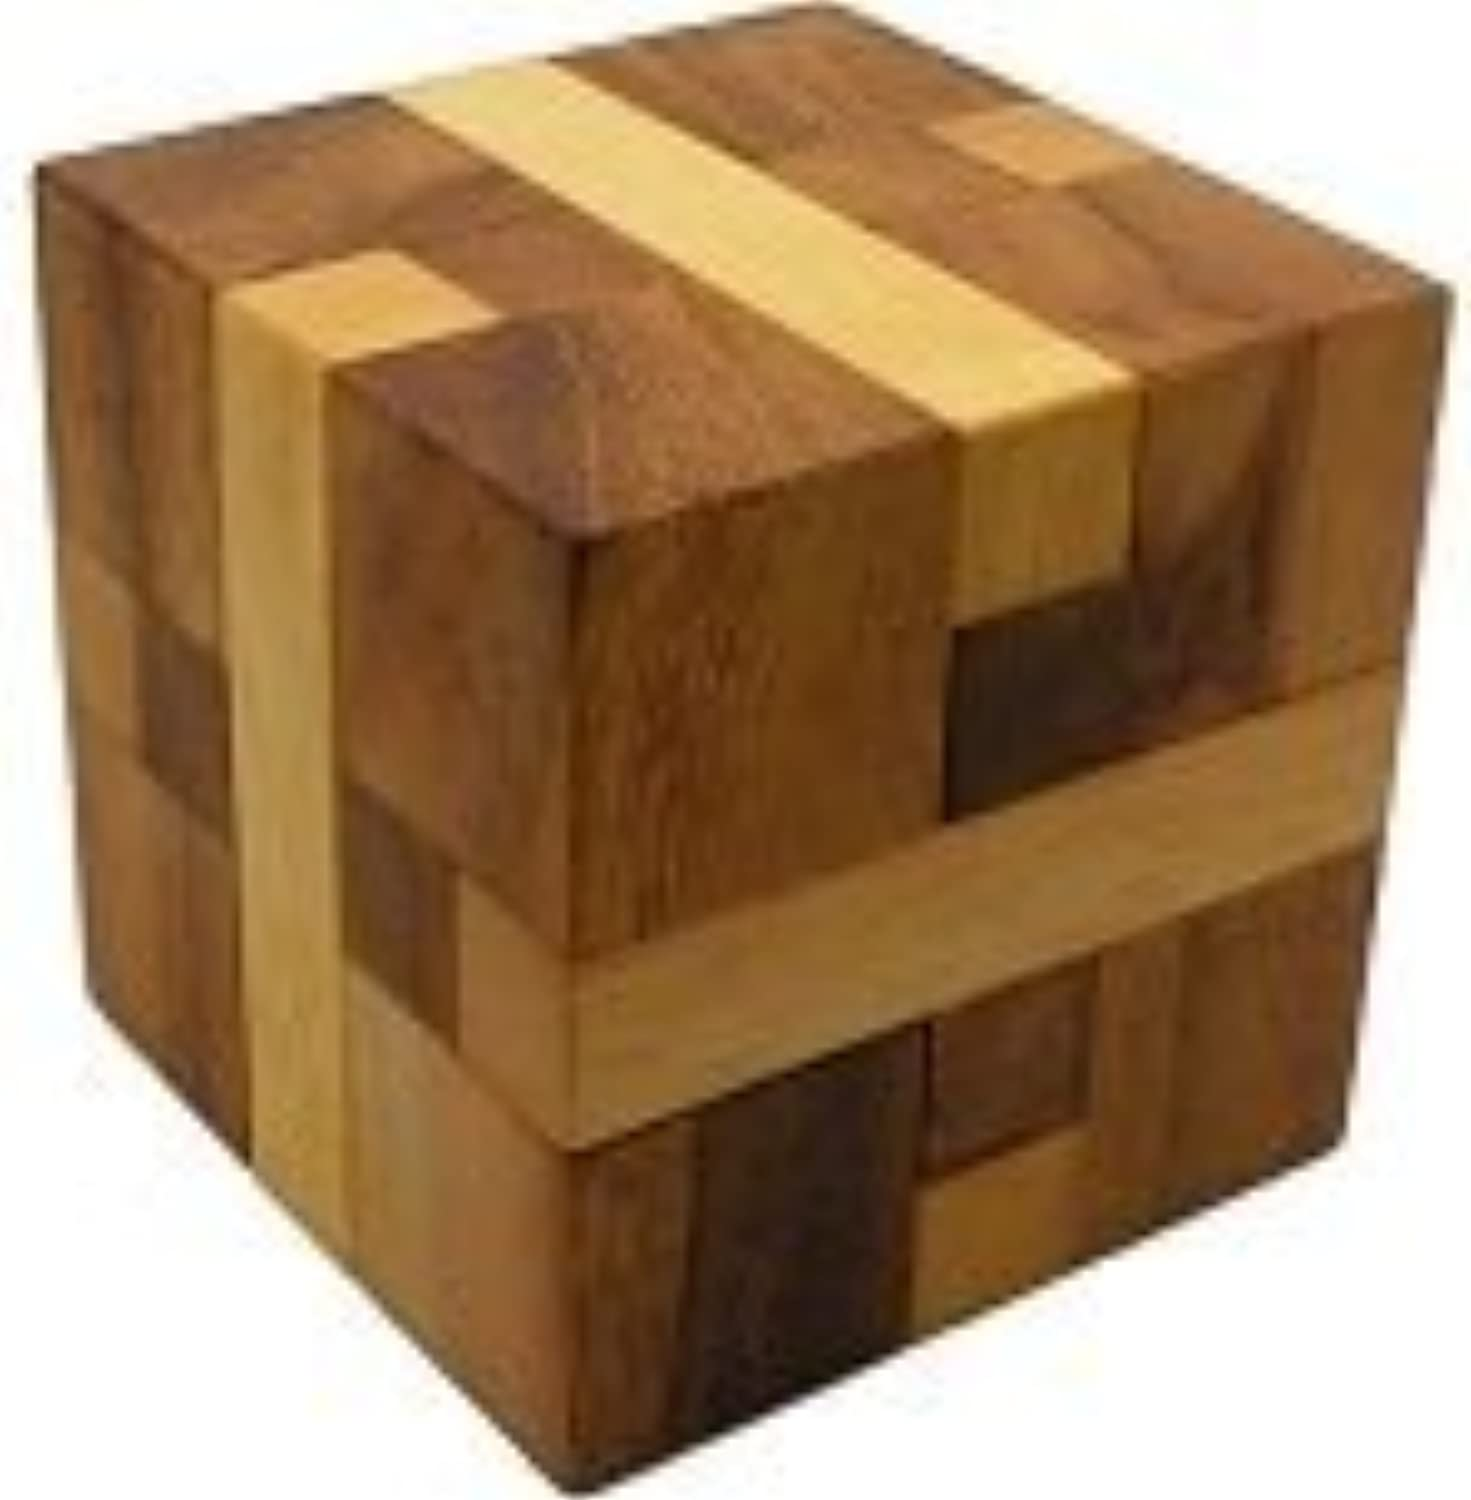 Bind Cube  Wooden Brain Teaser Puzzle by Winshare Puzzles and Games